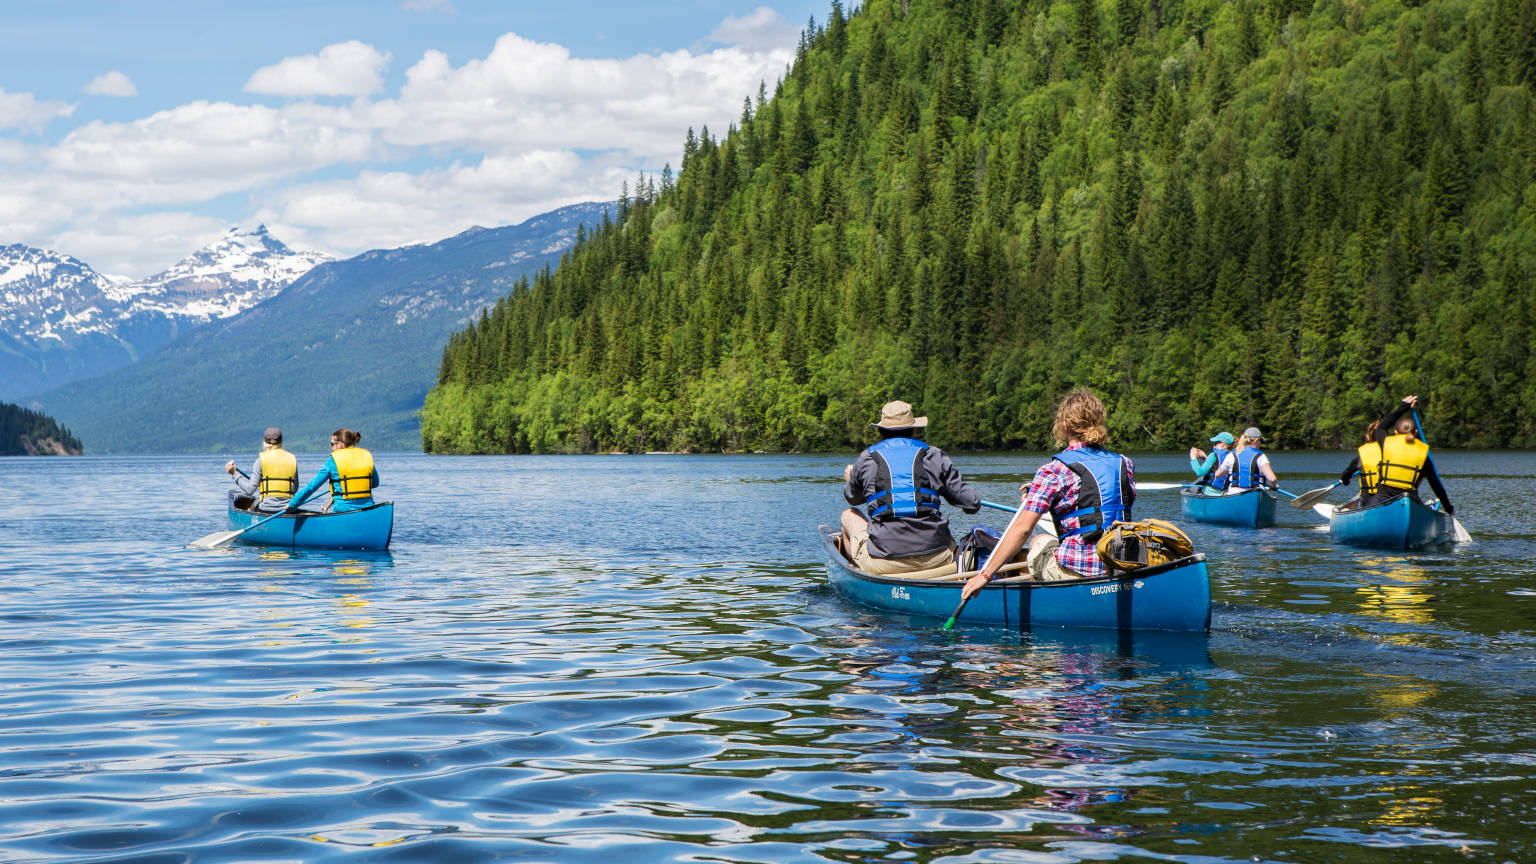 Canada British Columbia Wells Provincial Park Group Canoeing